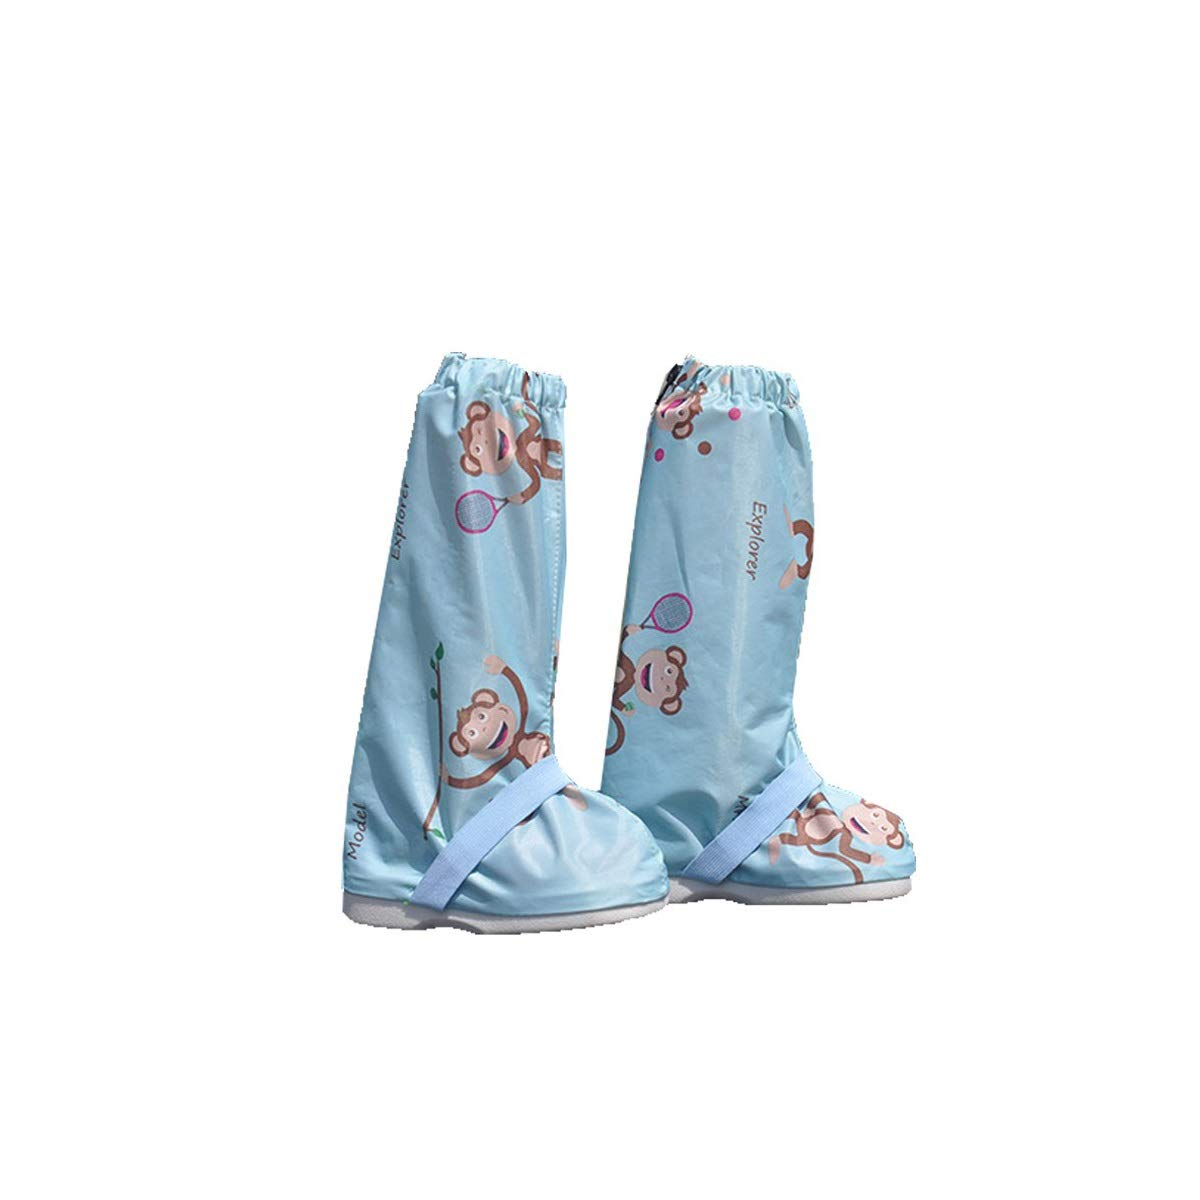 WUHUIZHENJINGXIAOBU Outdoor Snow Cover, Rain Shoe Cover, Thick Wear-resistant Adult Rainproof Waterproof Non-slip Shoe Cover, Desert Sand-proof High Foot Cover, Blue, Pink Shoe covers that can be worn